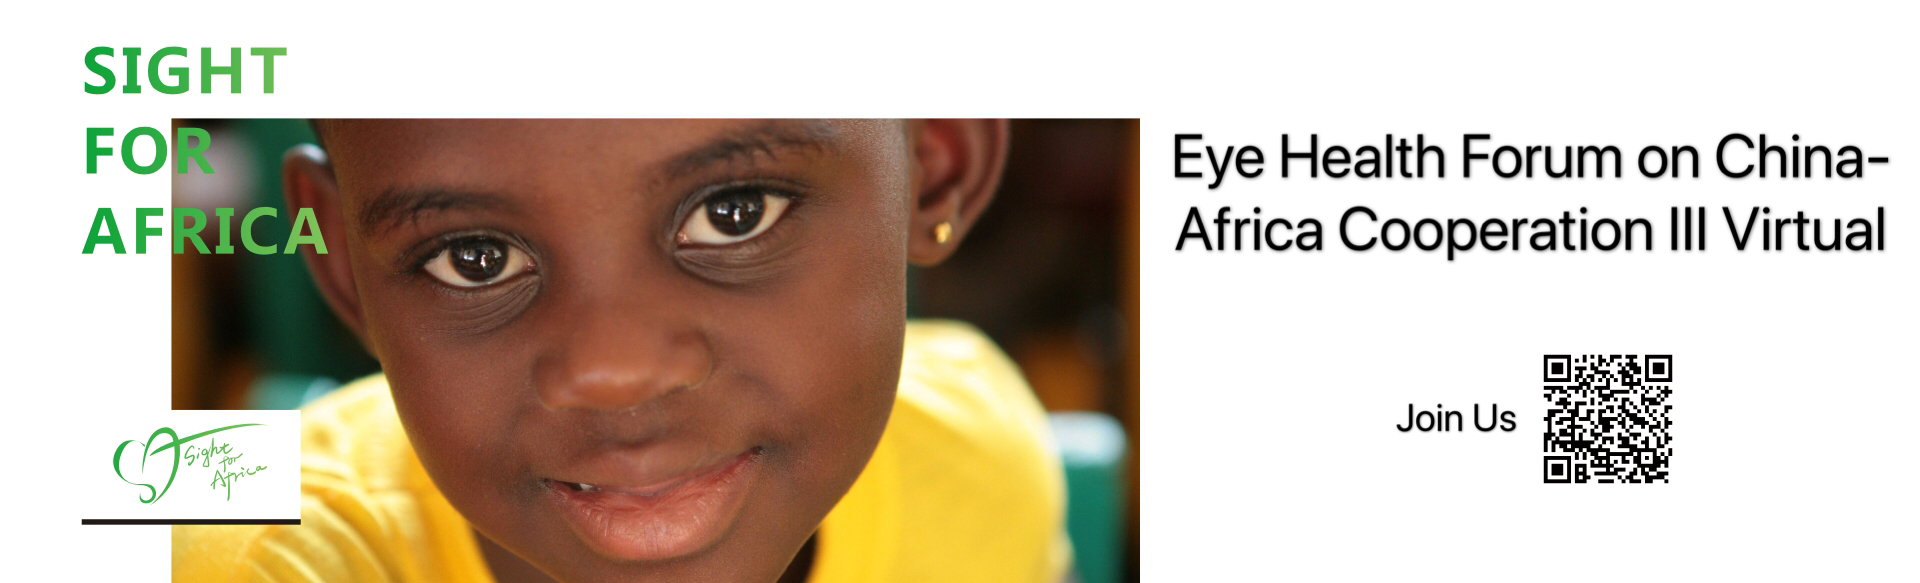 EYE HEALTH FORUM ON CHINA-AFRICA COOPERATION Ⅲ VIRTUAL (23RD JUNE 2020 11:00AM UTC)